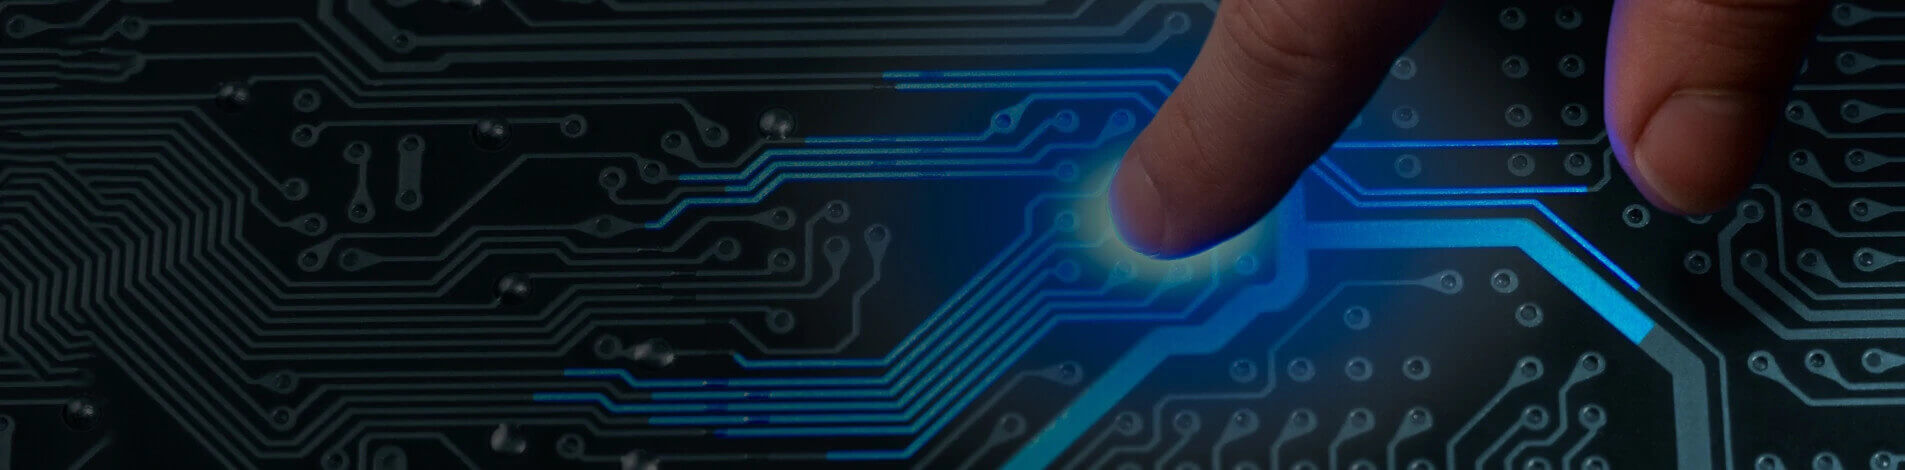 Printed Circuit board showing finger pointing at it